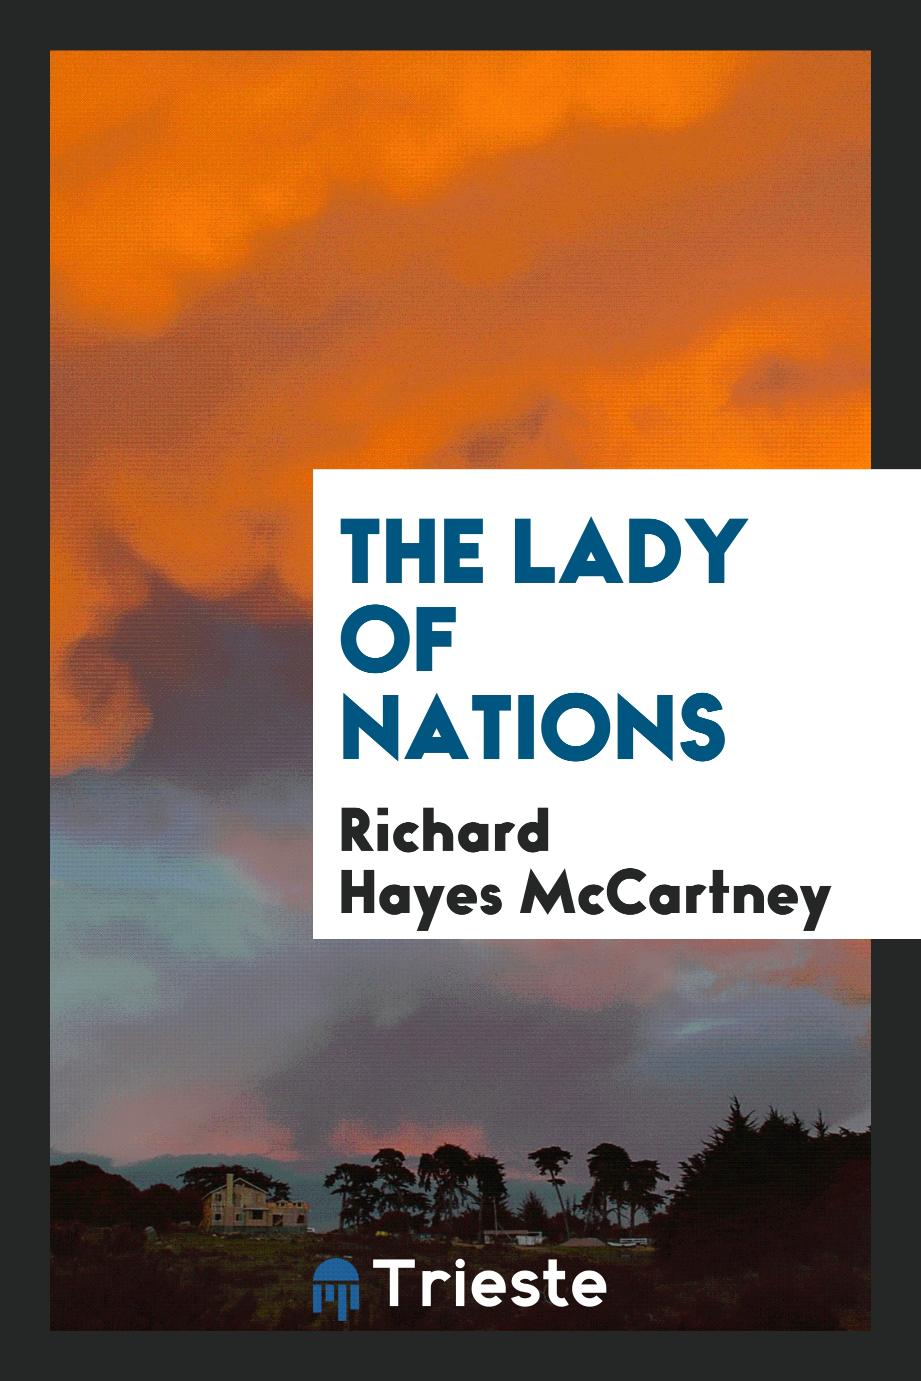 The Lady of Nations